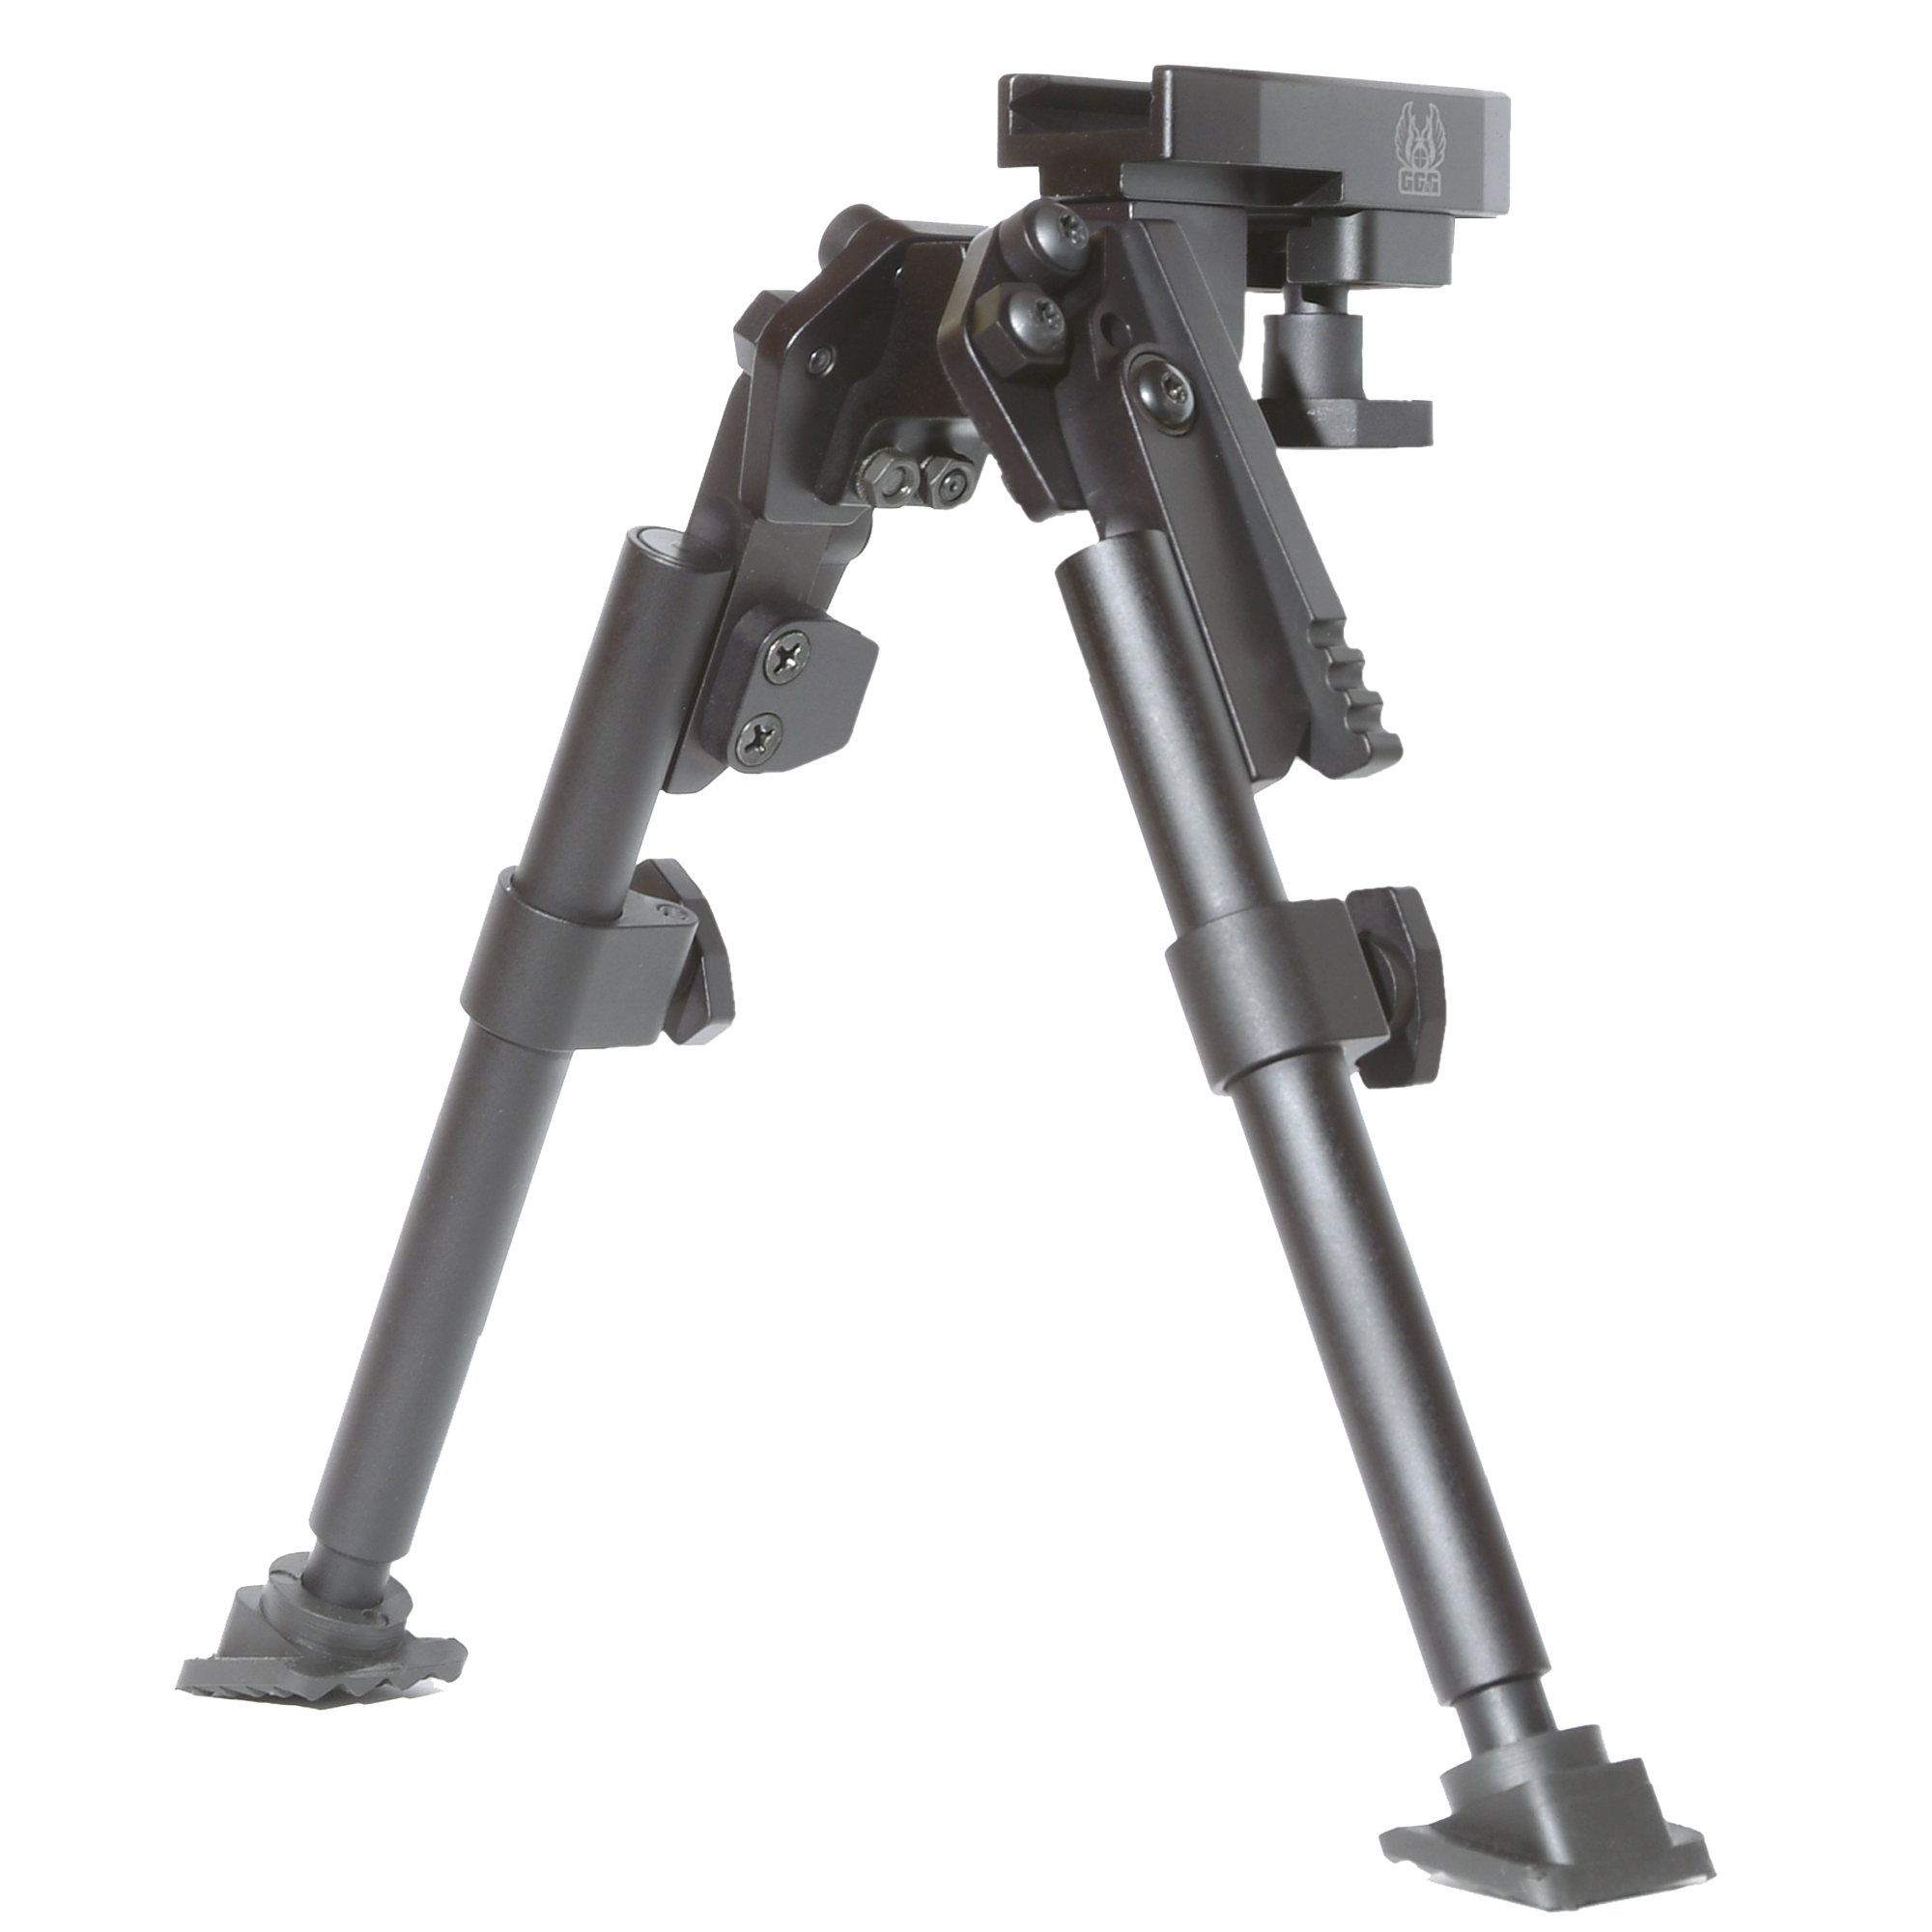 """GG&G's Tactical XDS Swivel Bipod for the AR-15 and M16 offers a greater range than previous versions. In addition to a stronger pivot mechanism"""" the new folding AR-15 bipod design affords 25 degrees of cant in either direction of center. Not only does this increase better rough terrain adjustability"""" but this pivoting capability allows the deployed bipod leg to be used as a vertical foregrip if required for rapid transition. In addition"""" a tension mechanism and adjustment knob has been added so that the operator does not need tools to make tension adjustments to the swivel. It is specifically designed and manufactured to meet current military requirements. It is exceptionally rugged. It will not only withstand extreme environmental conditions from -55 degrees Fahrenheit to +155 degrees Fahrenheit"""" but be operational under those conditions. With the bipod legs deployed it will withstand the military's three-foot drop test onto a concrete floor while mounted to an AR15/M16 or M4 carbine and maintain full battle capability. The quick-release bipod is equipped with a MIL-STD-1913 rail adapter that does not require tools for installation. GG&G's gun bipod will also attach to any rifle with a 6 o'clock under barrel MIL-STD-1913 or Weaver type rail."""